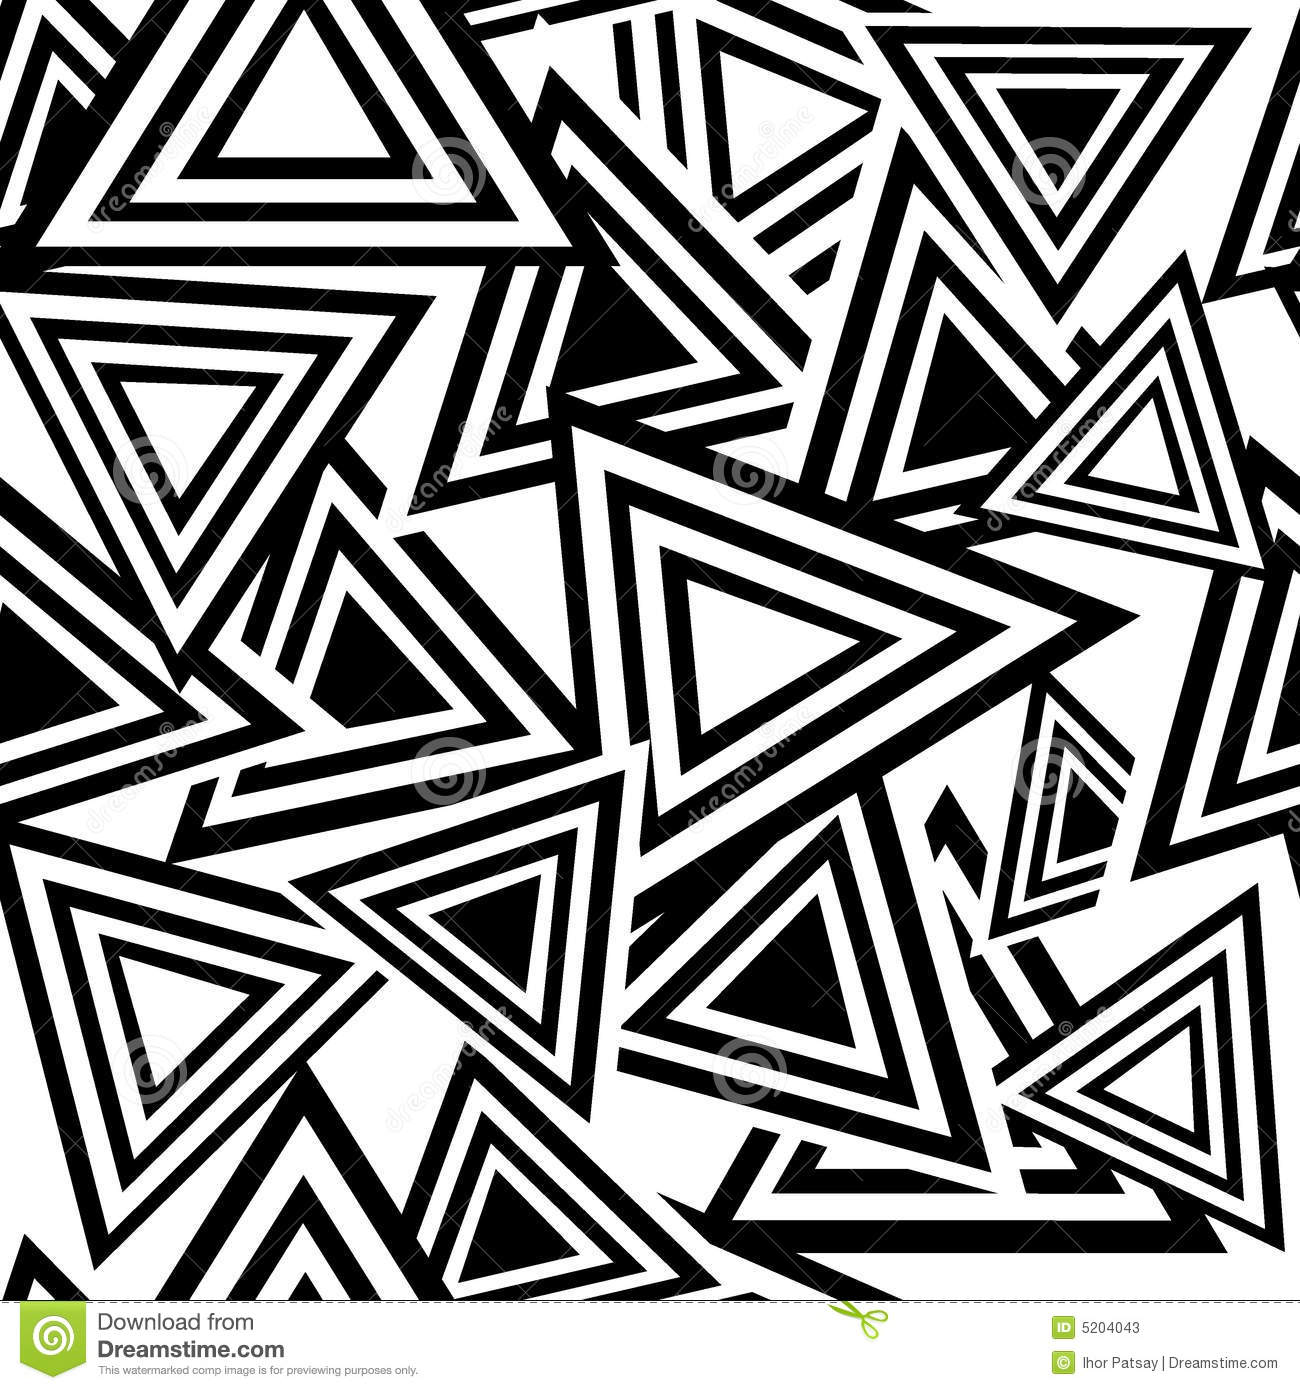 Cool Black And White Triangle Patterns Images & Pictures - Becuo